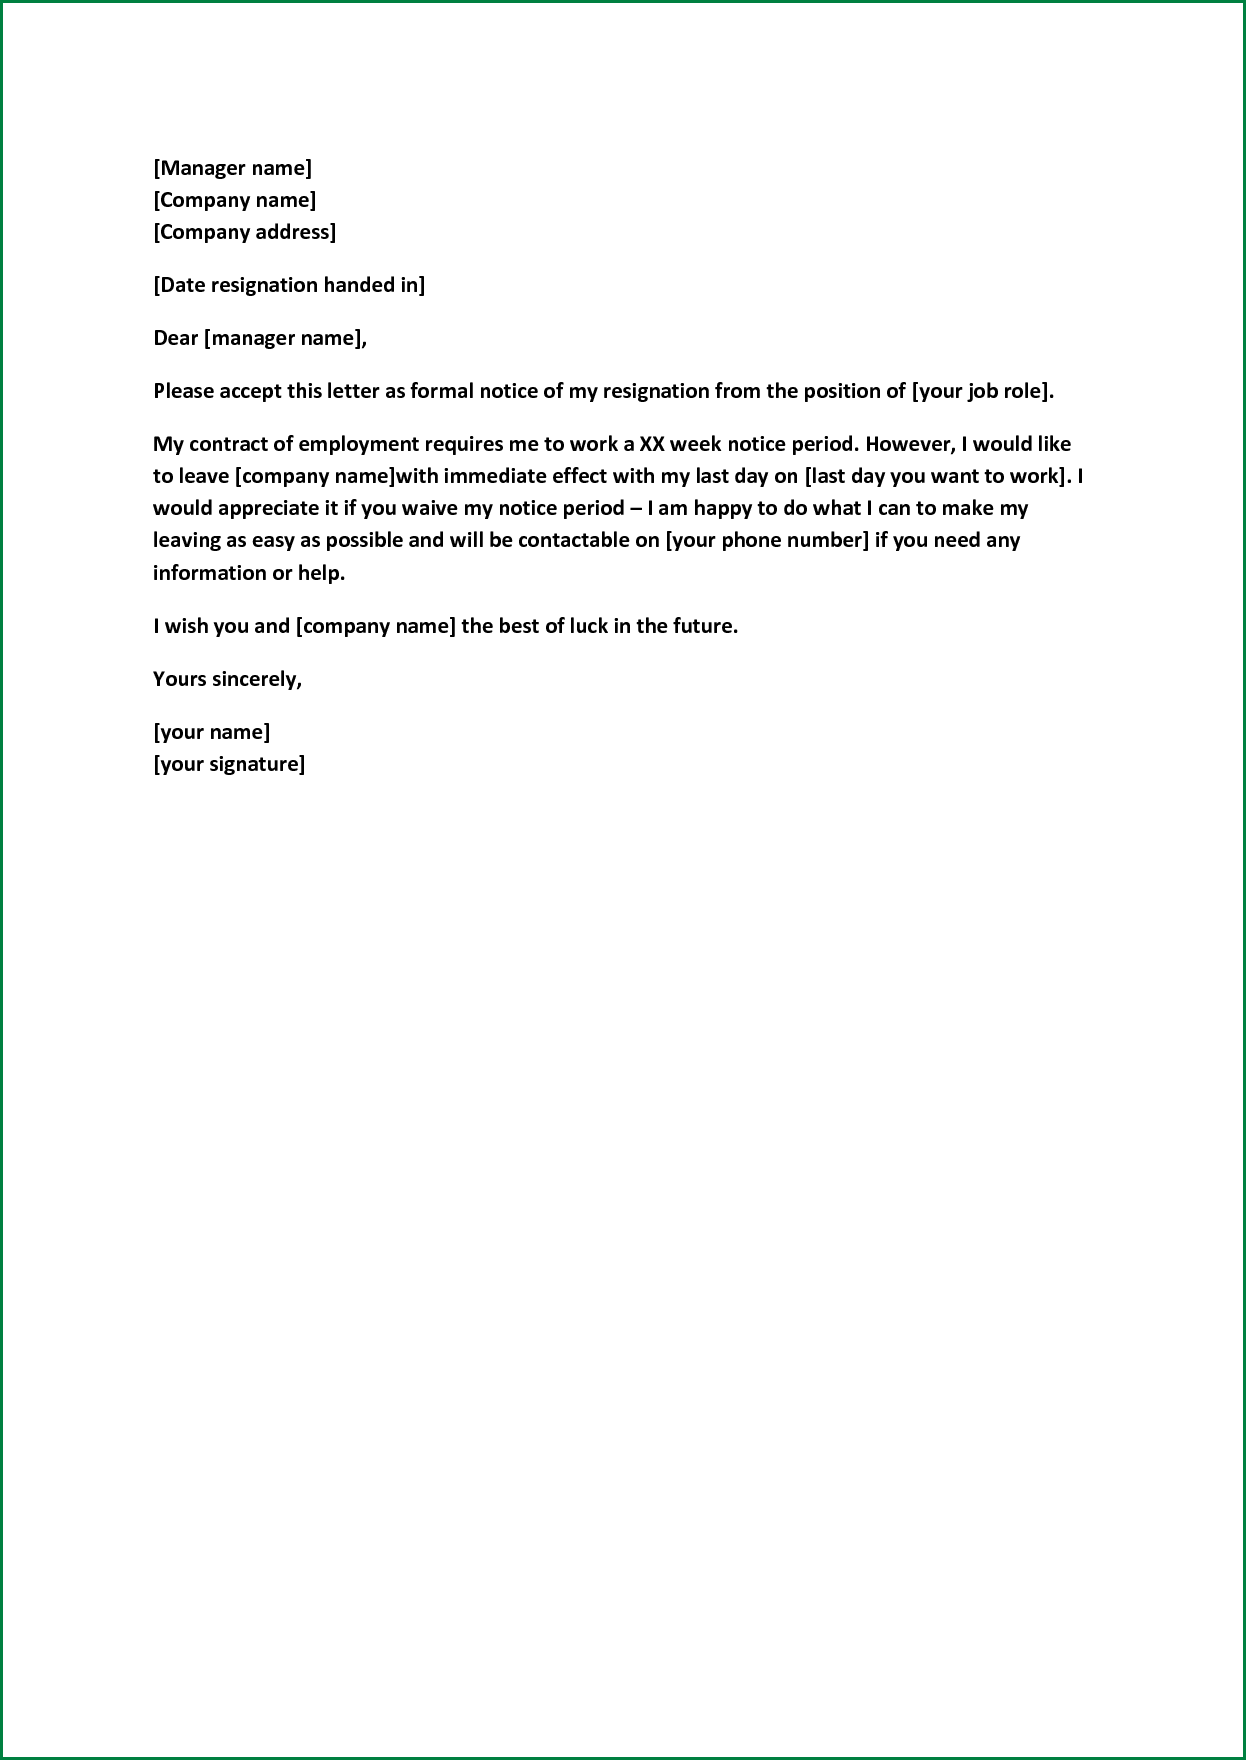 Resignation Letter : Formal Resignation Letter Sample With Notice